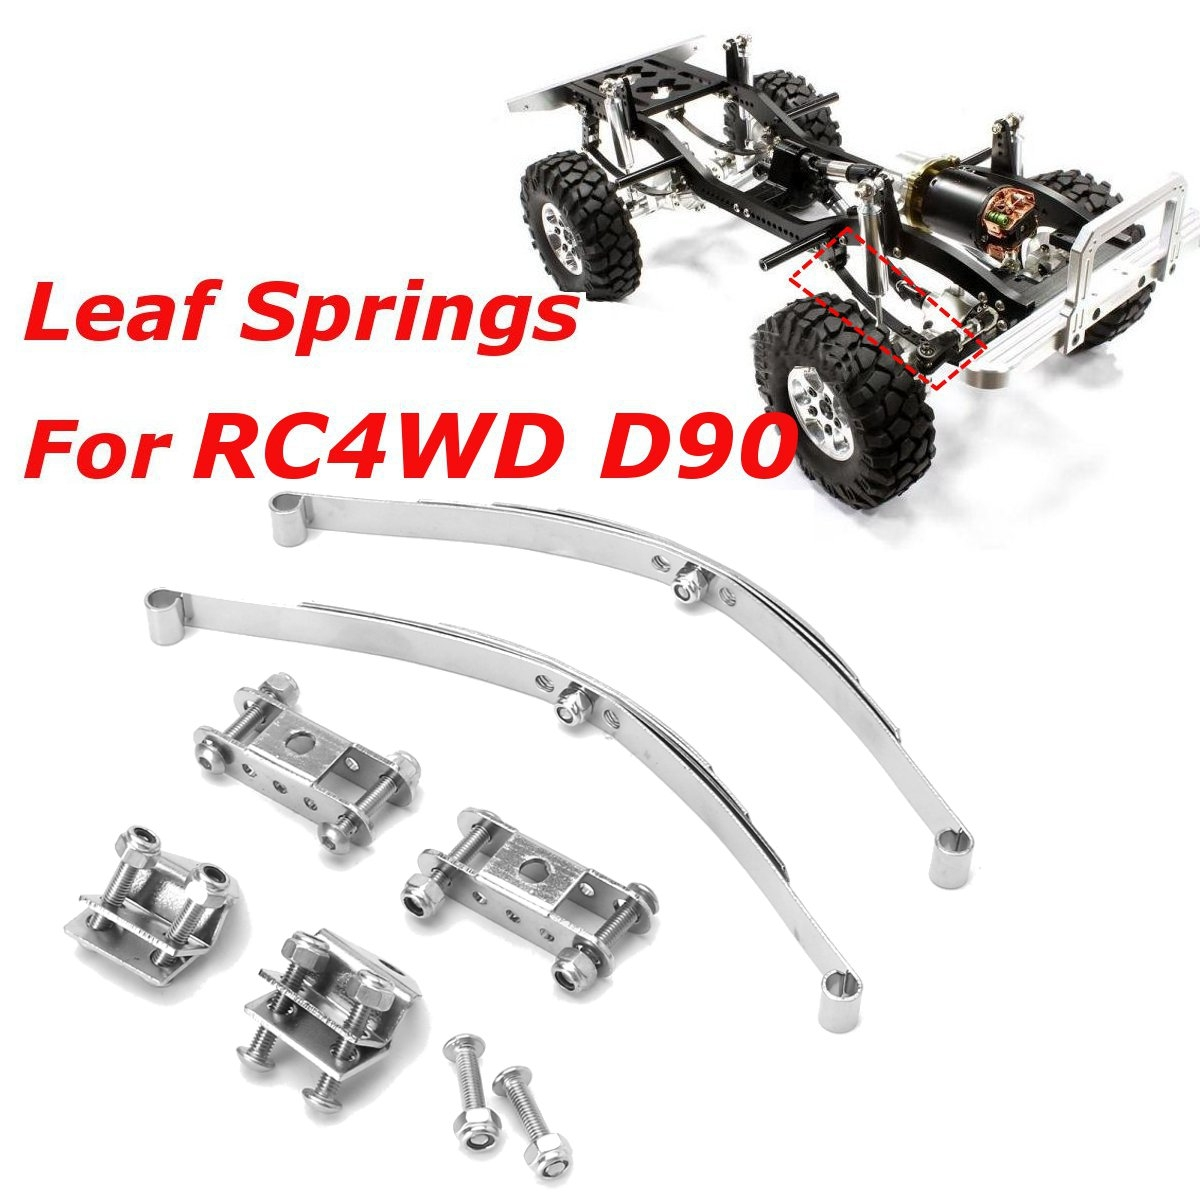 1/10 Leaf Springs Set HighLift Chassis For D90 RC Crawler Car Parts Silver Color